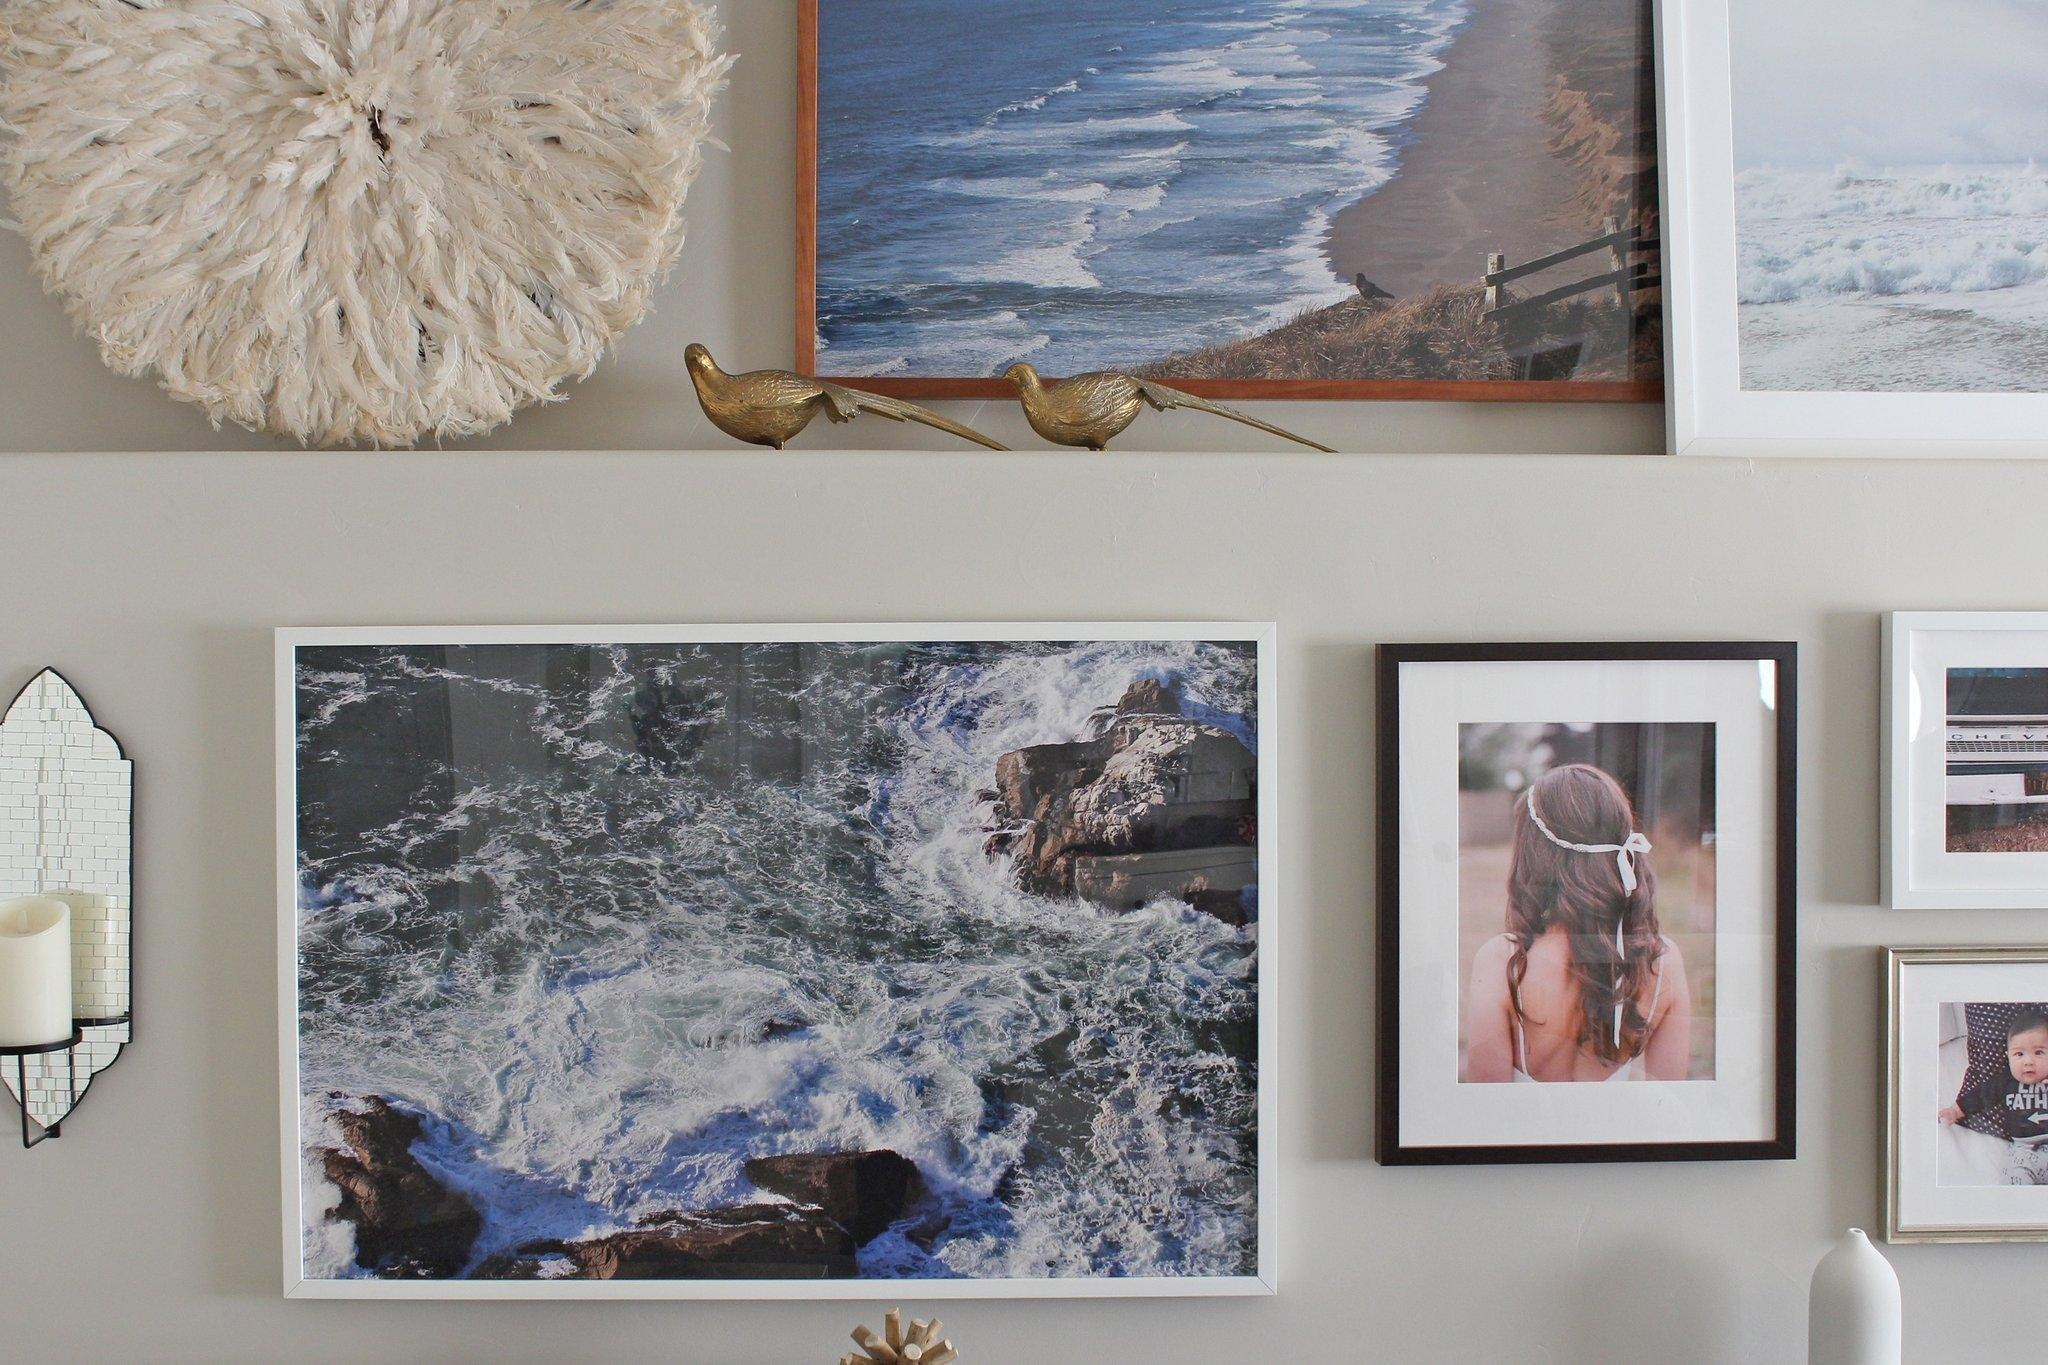 How To Turn Your Photos Into Art | Popsugar Home Inside Turn Pictures Into Wall Art (View 5 of 20)